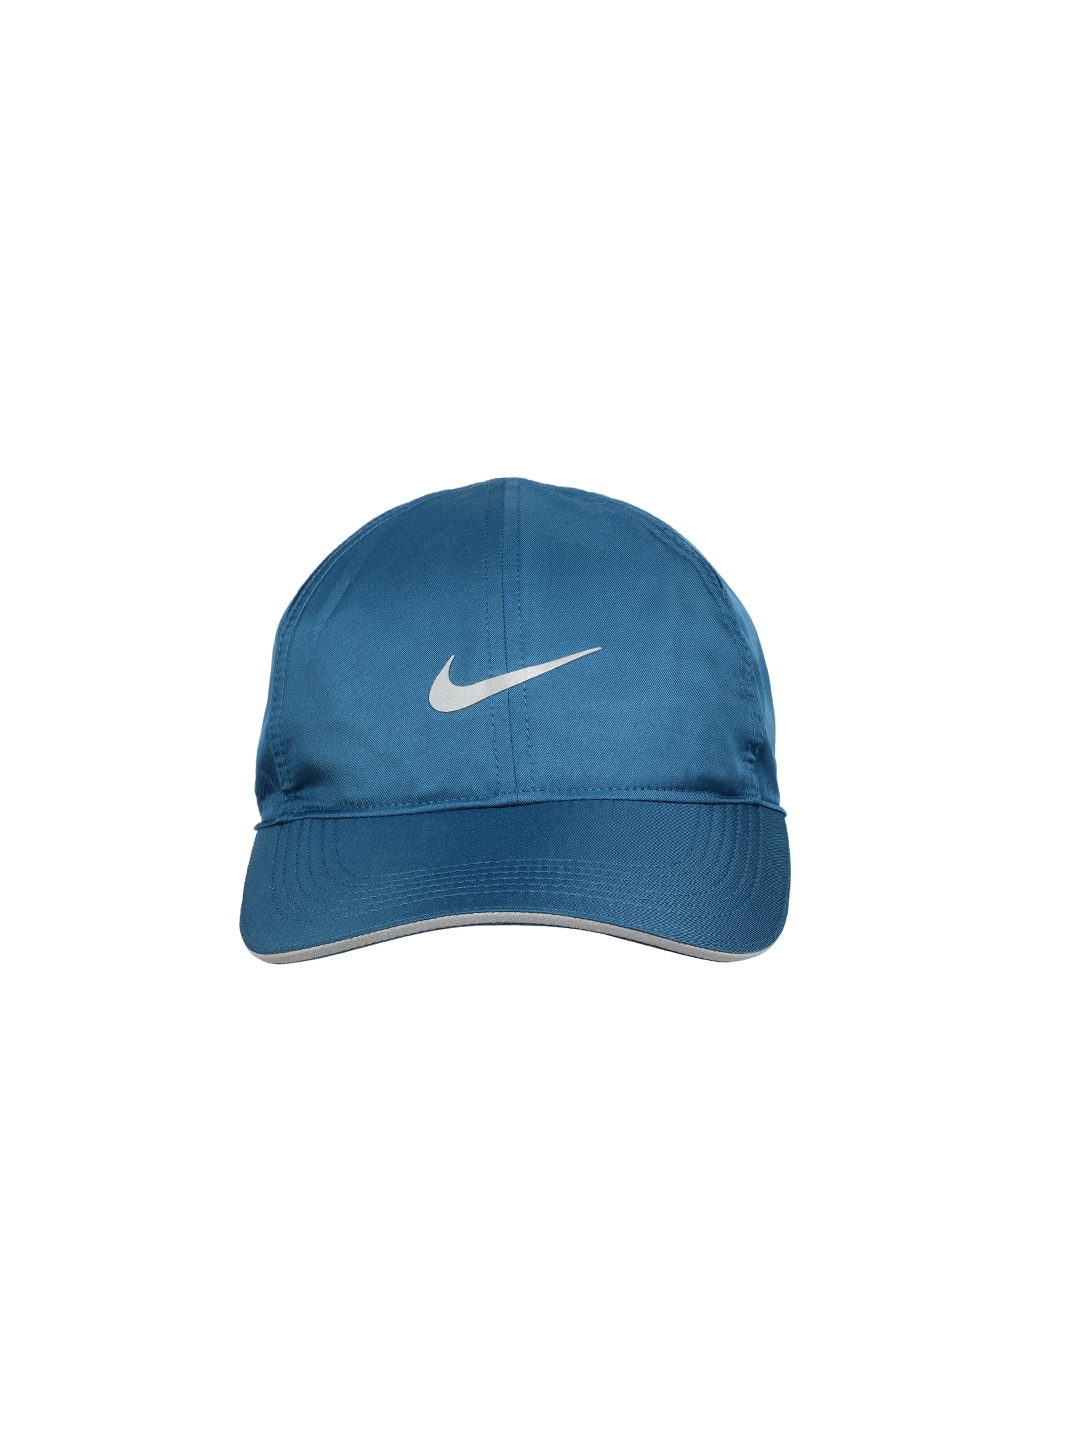 Nike Accessories - Buy Nike Accessory Online in India  7500c51e211a